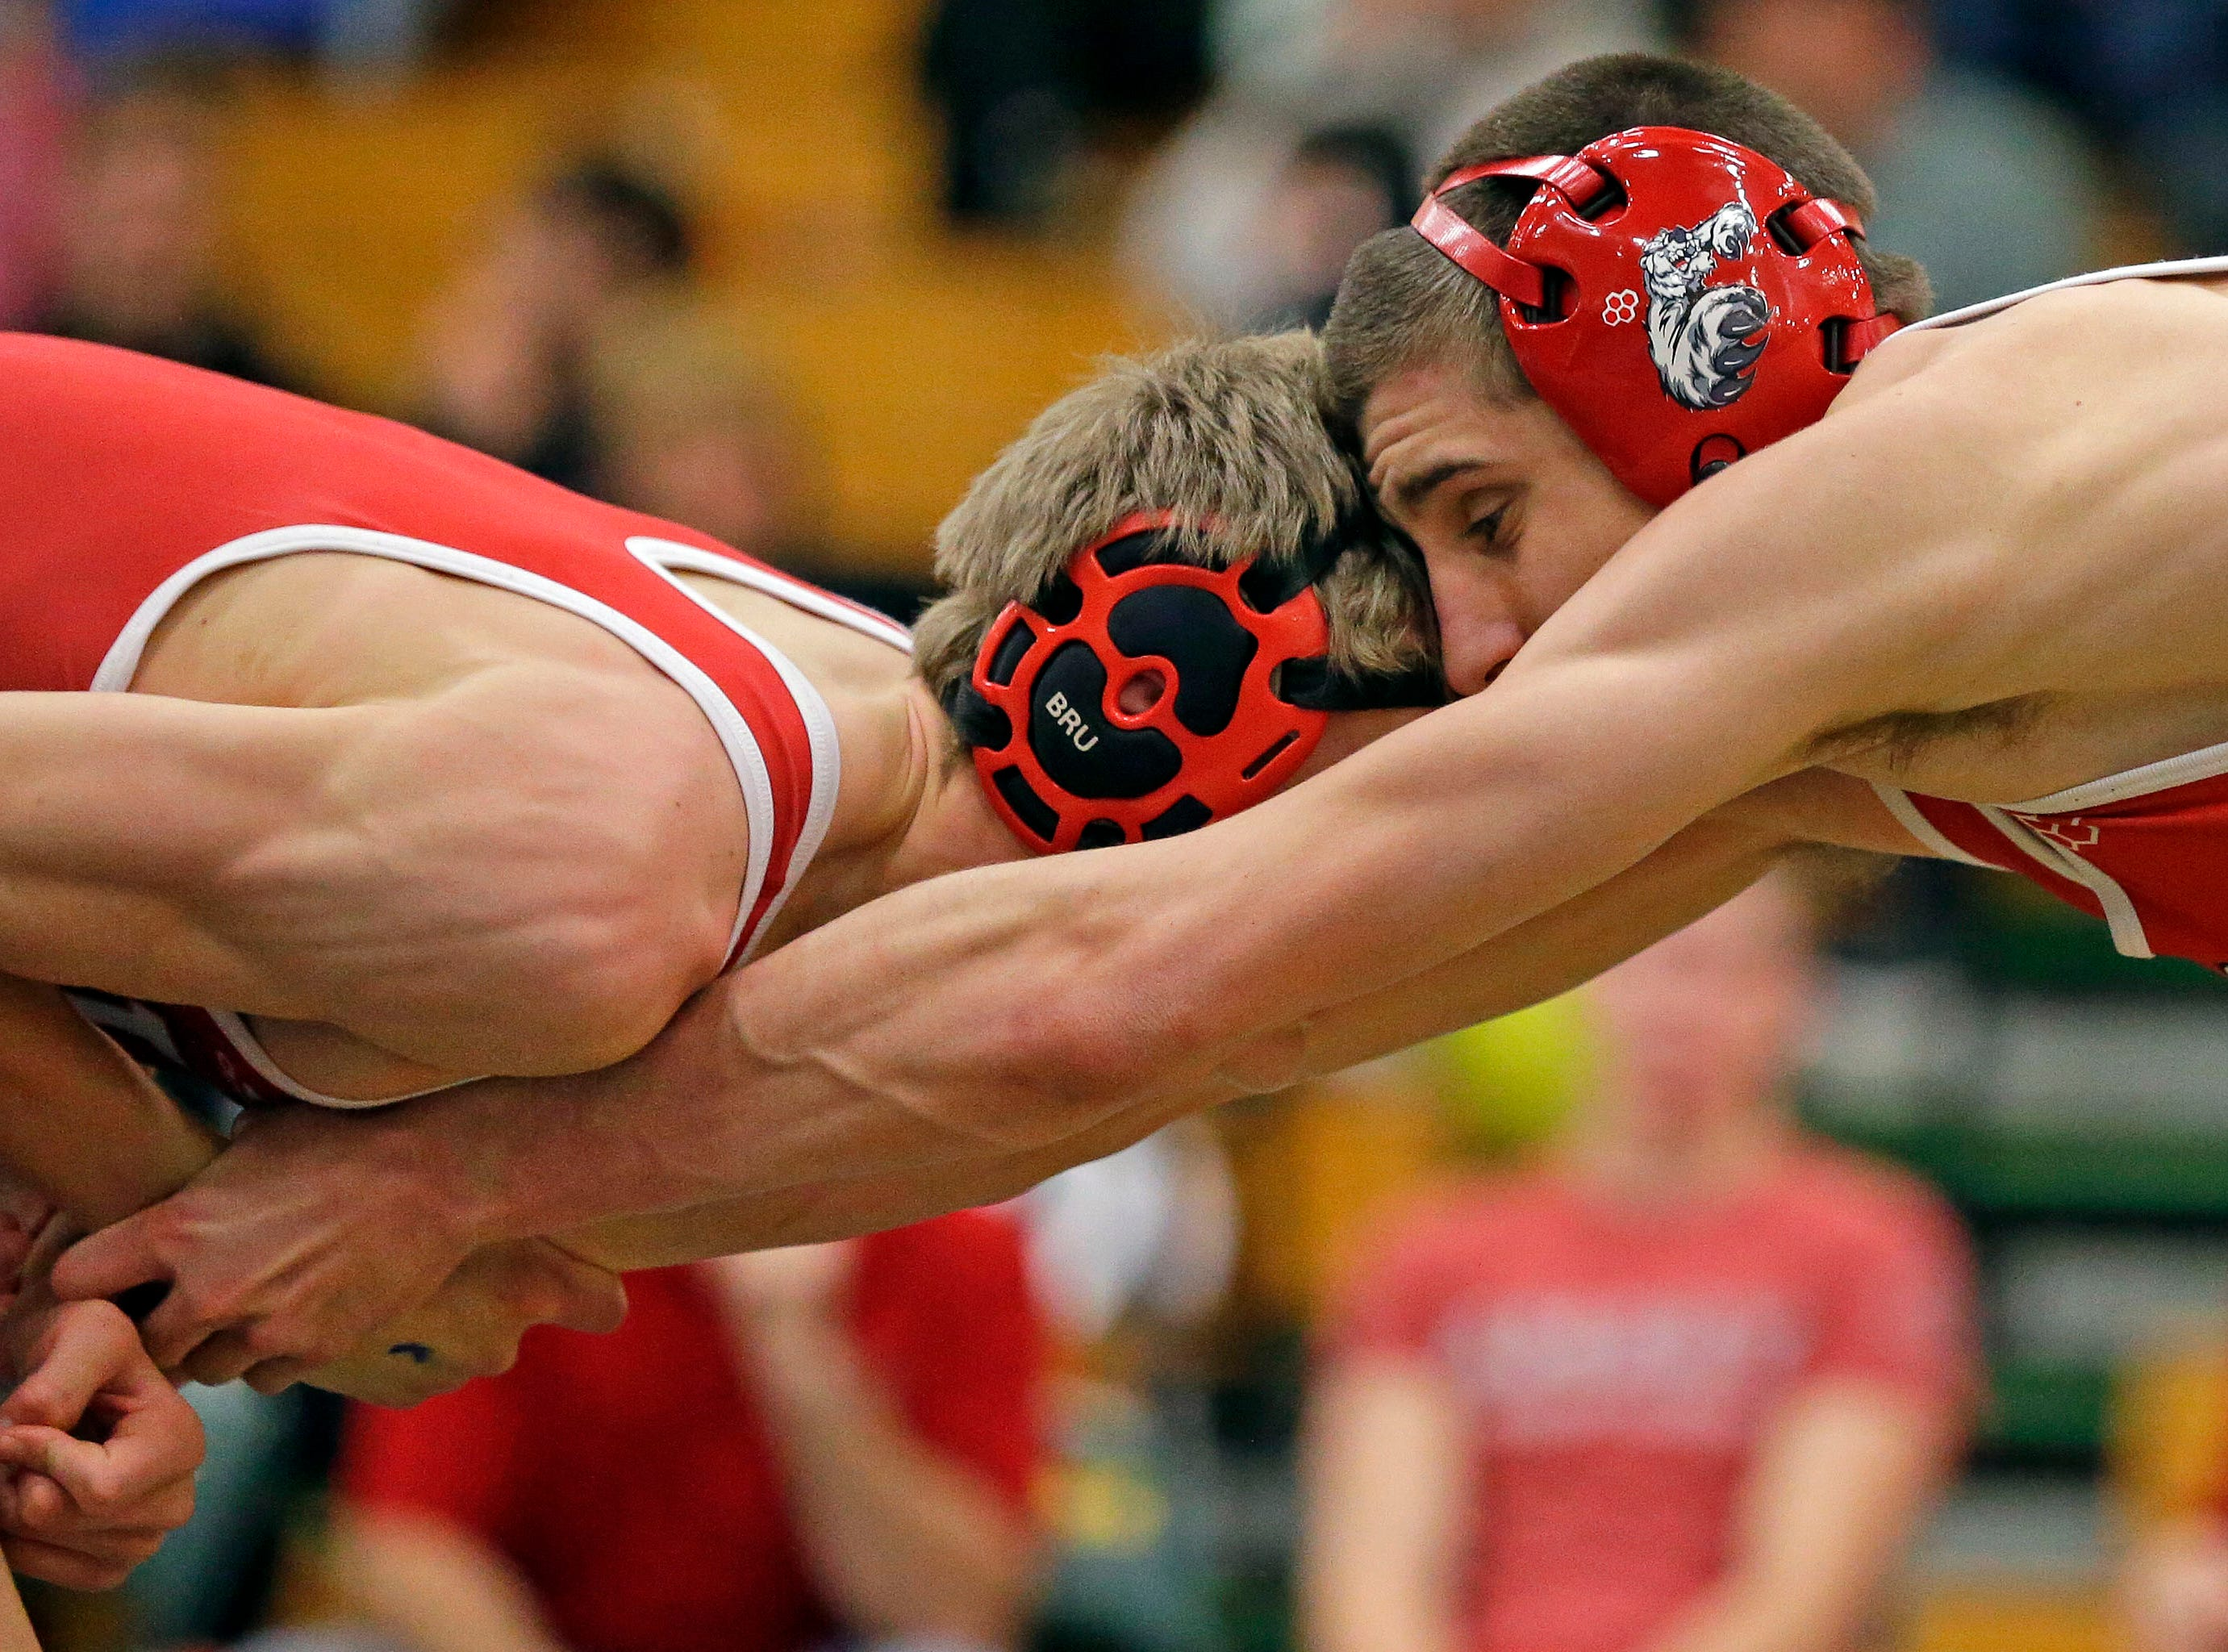 Keaton Tollakson of Amery, left, wrestles Jacob Collar of Hortonville during the 2019 Freedom Irish Invitational Saturday, January 12, 2019, at Freedom High School in Freedom, Wis.